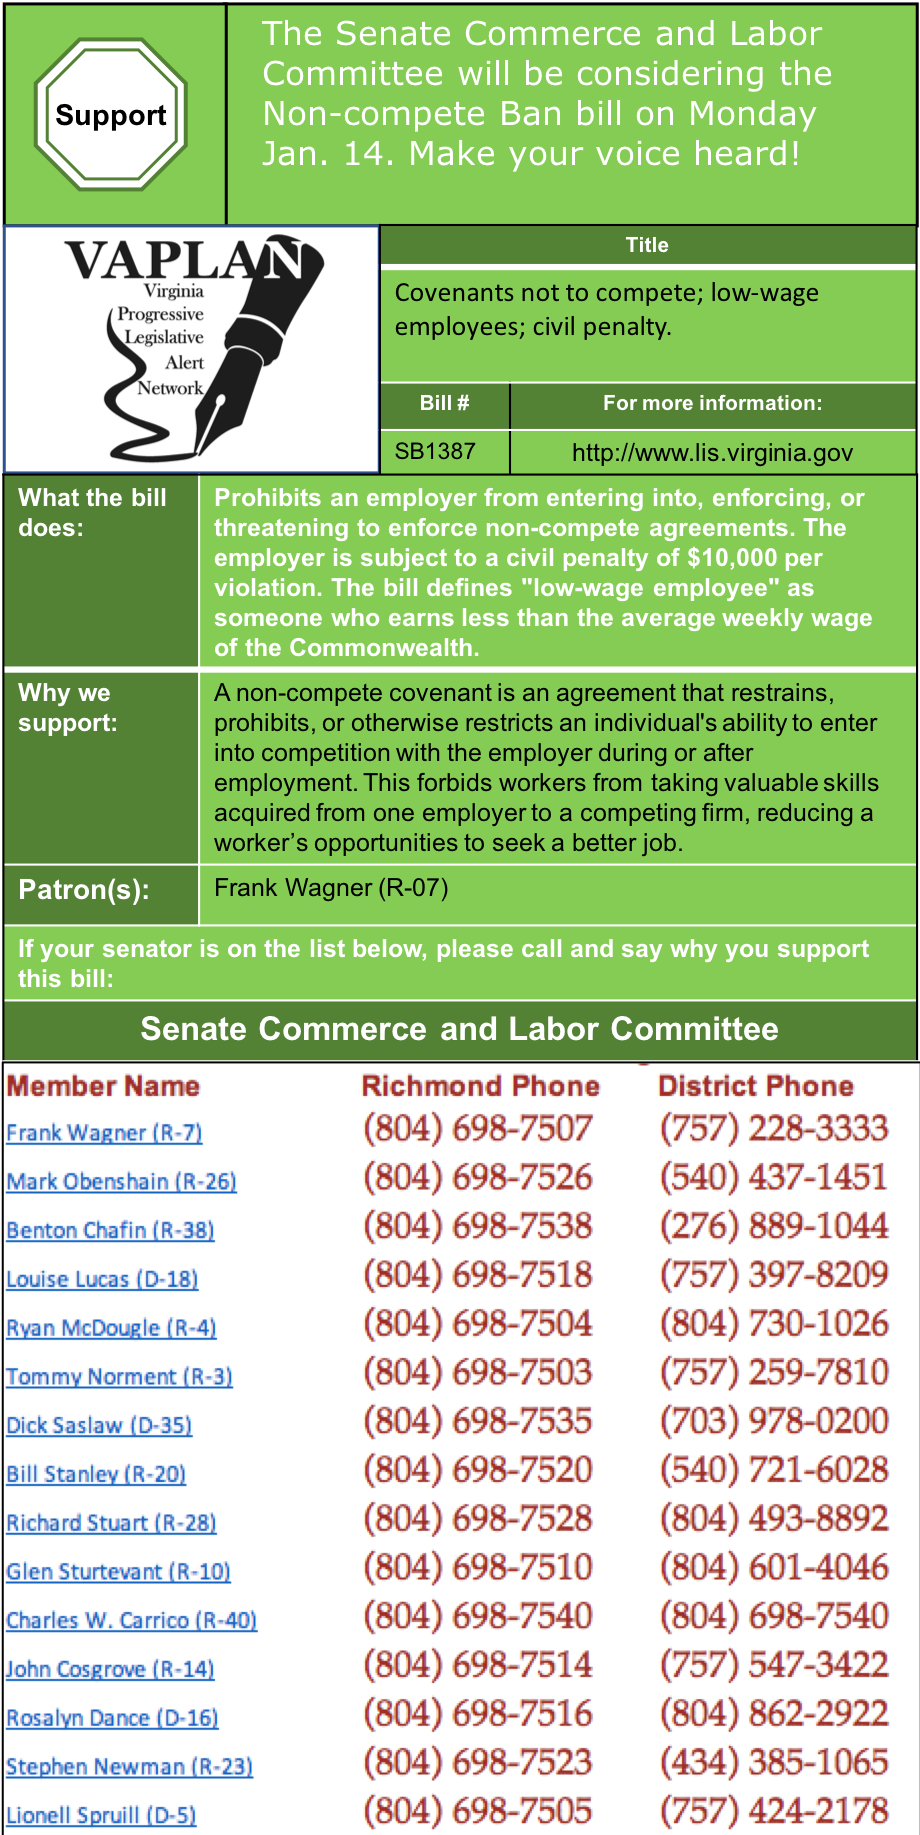 ALERT: Support Ending Non-Compete Covenants in Senate Commerce & Labor